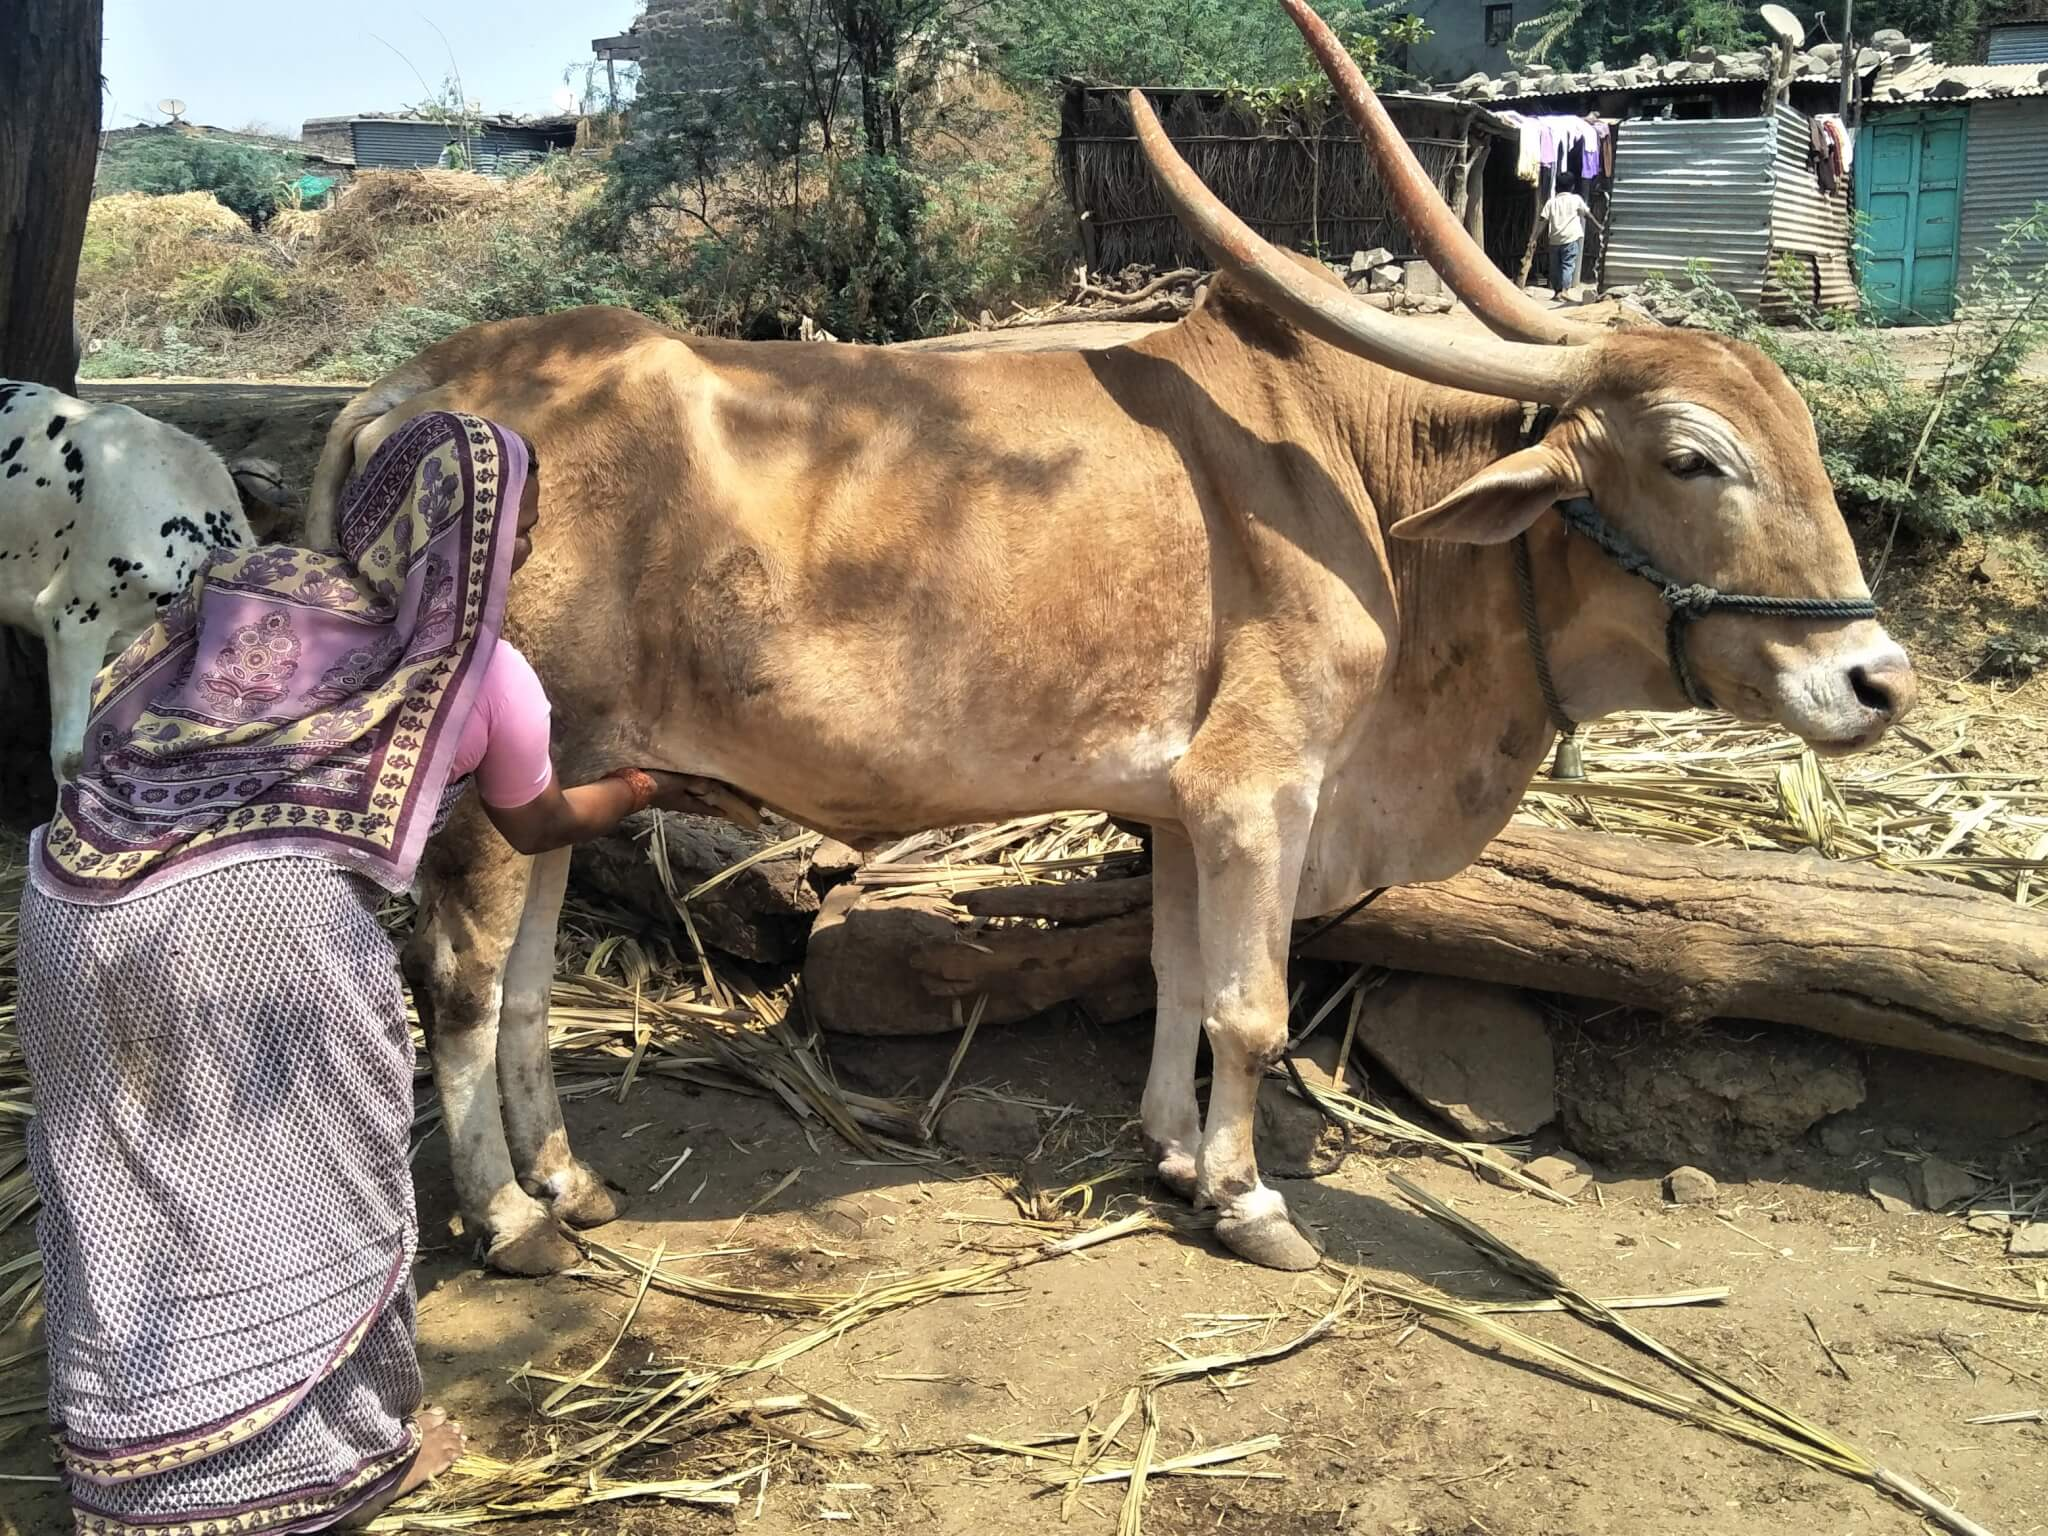 A woman practices grooming a brown bullock during a demonstration in her village.